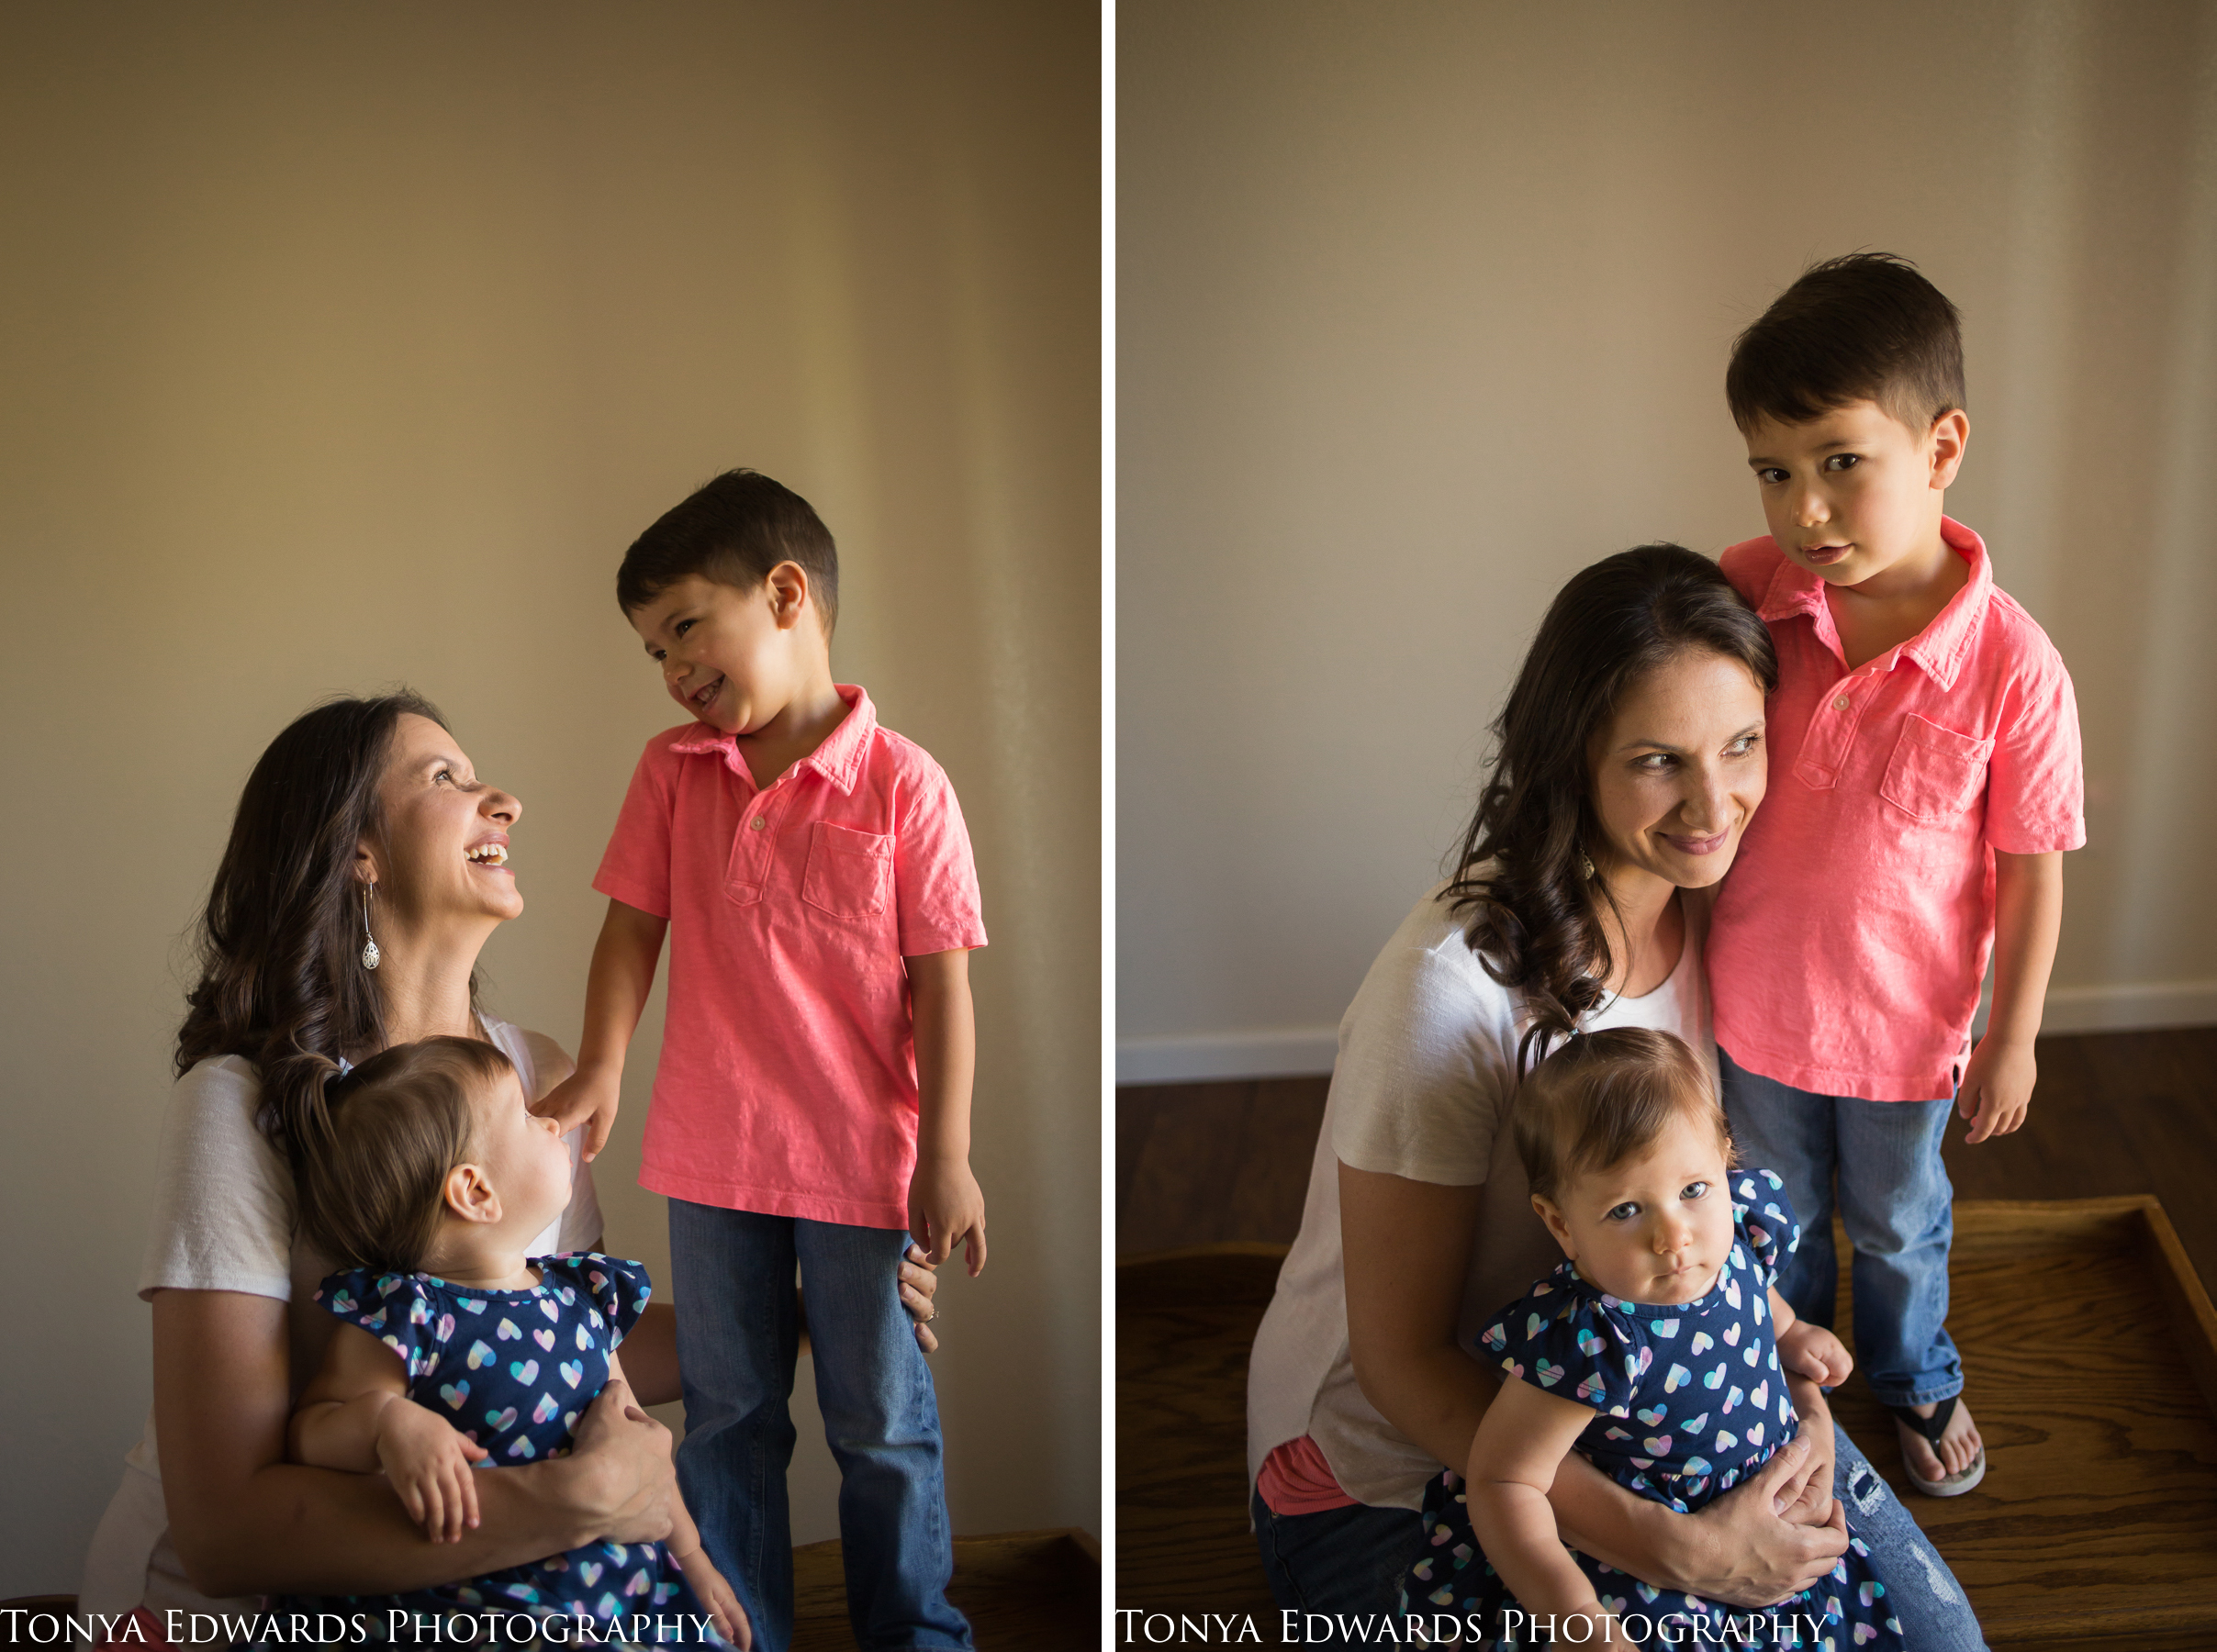 Tonya Edwards Photography | Oroville Photographer | motherhood photos at mini session with mama daughter and son indoors in natural light